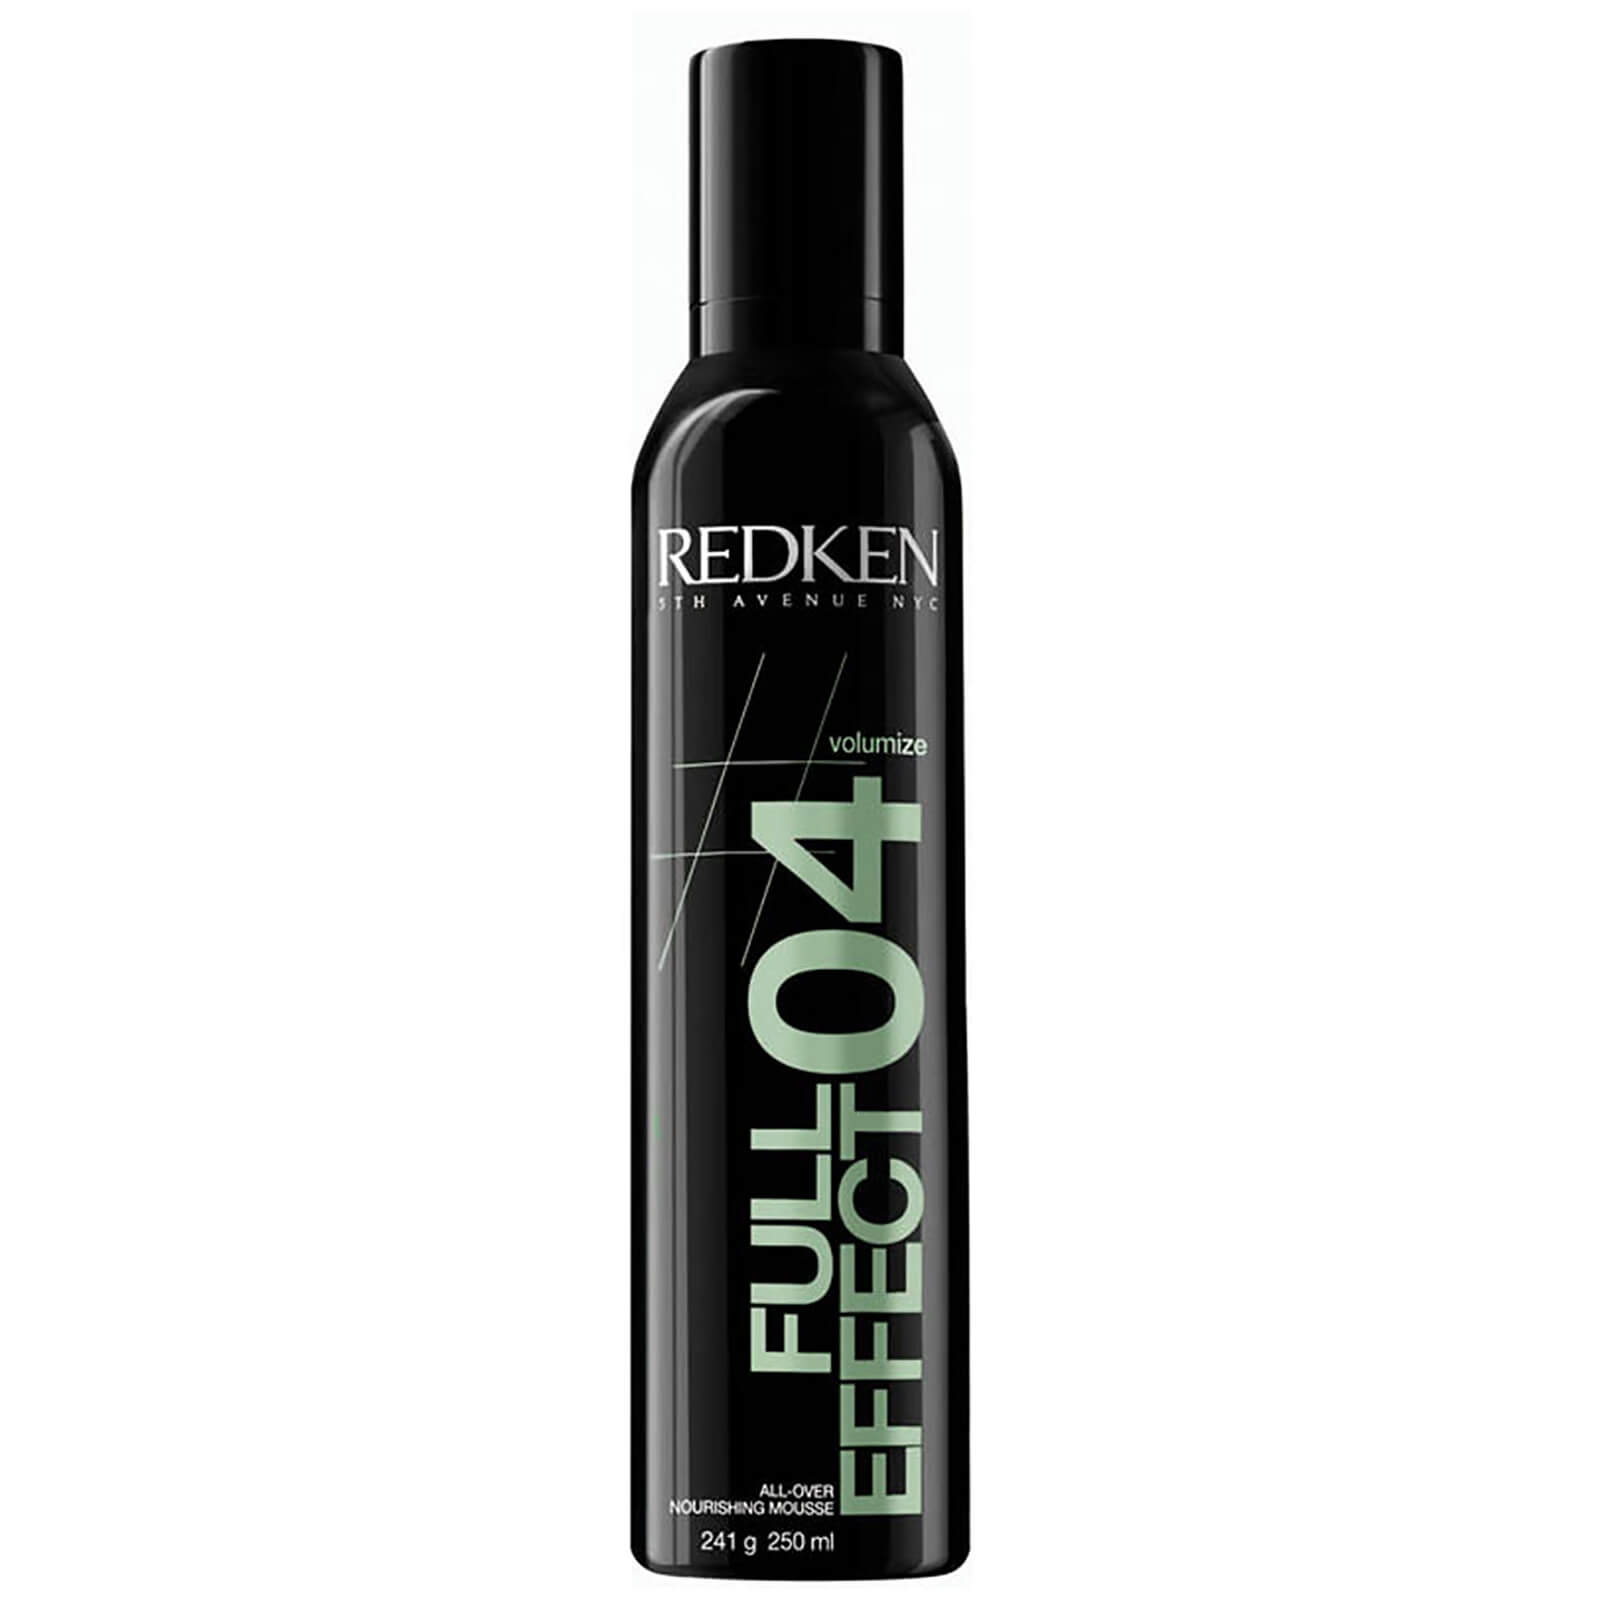 Voluminizador Full Effect o4 de Redken